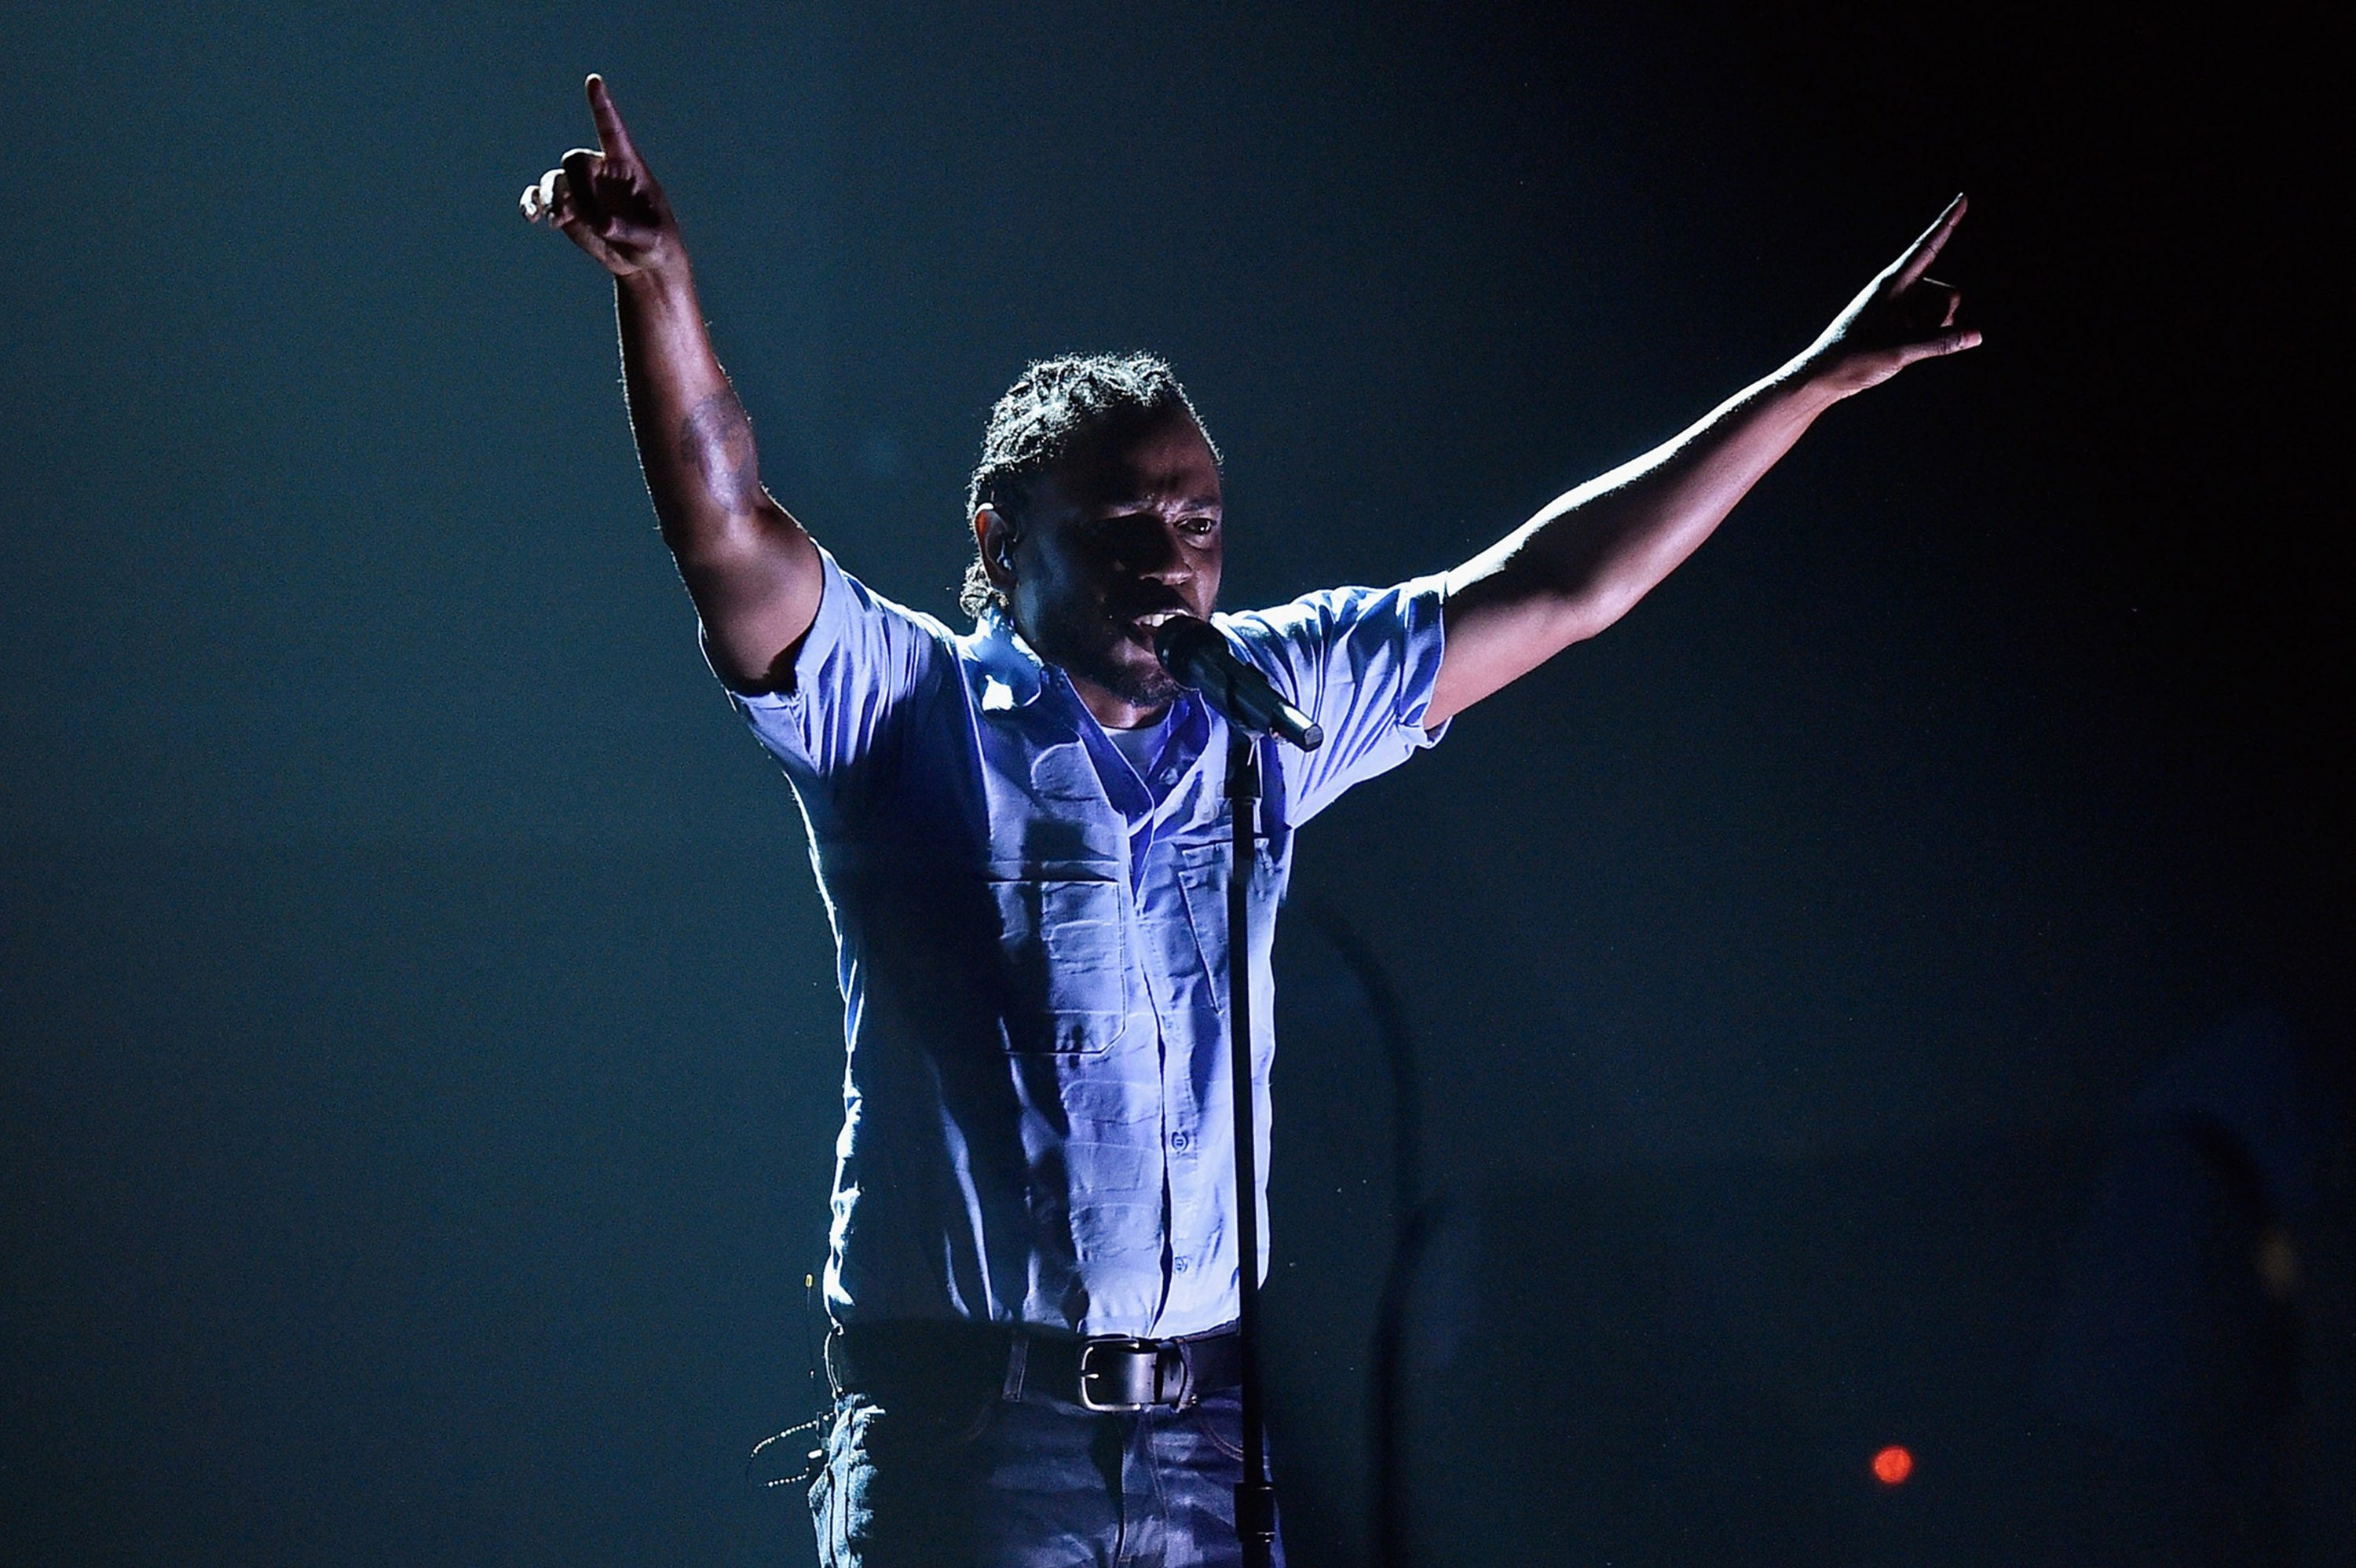 """Rapper Kendrick Lamar, shown performing during the 58th Grammy Awards show in February, delivers his most experimental effort yet with """"untitled unmastered."""""""